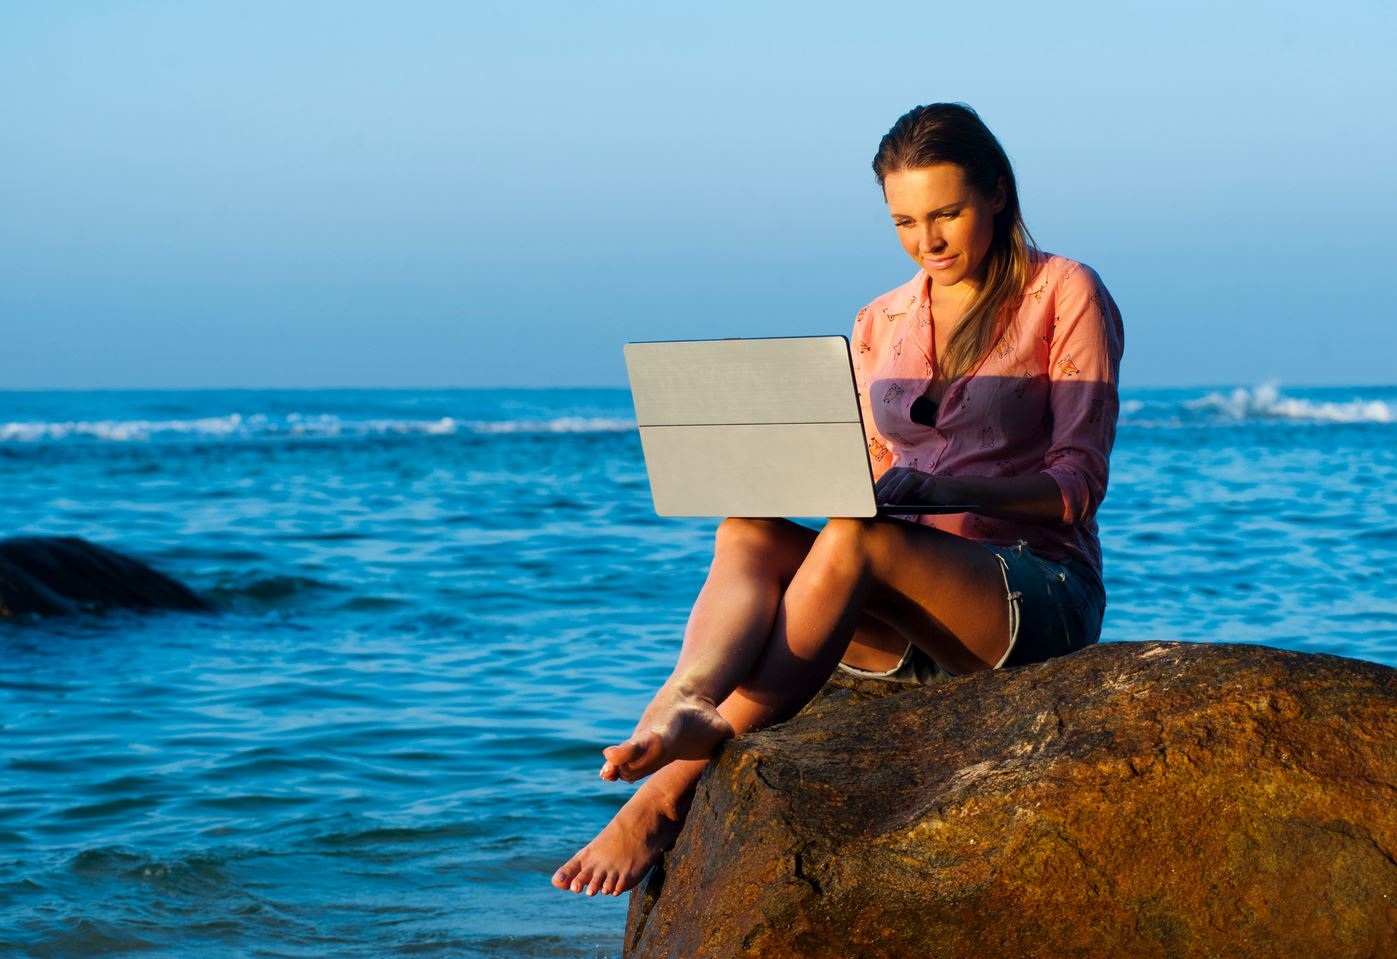 Work from beach - lady with laptop sitti